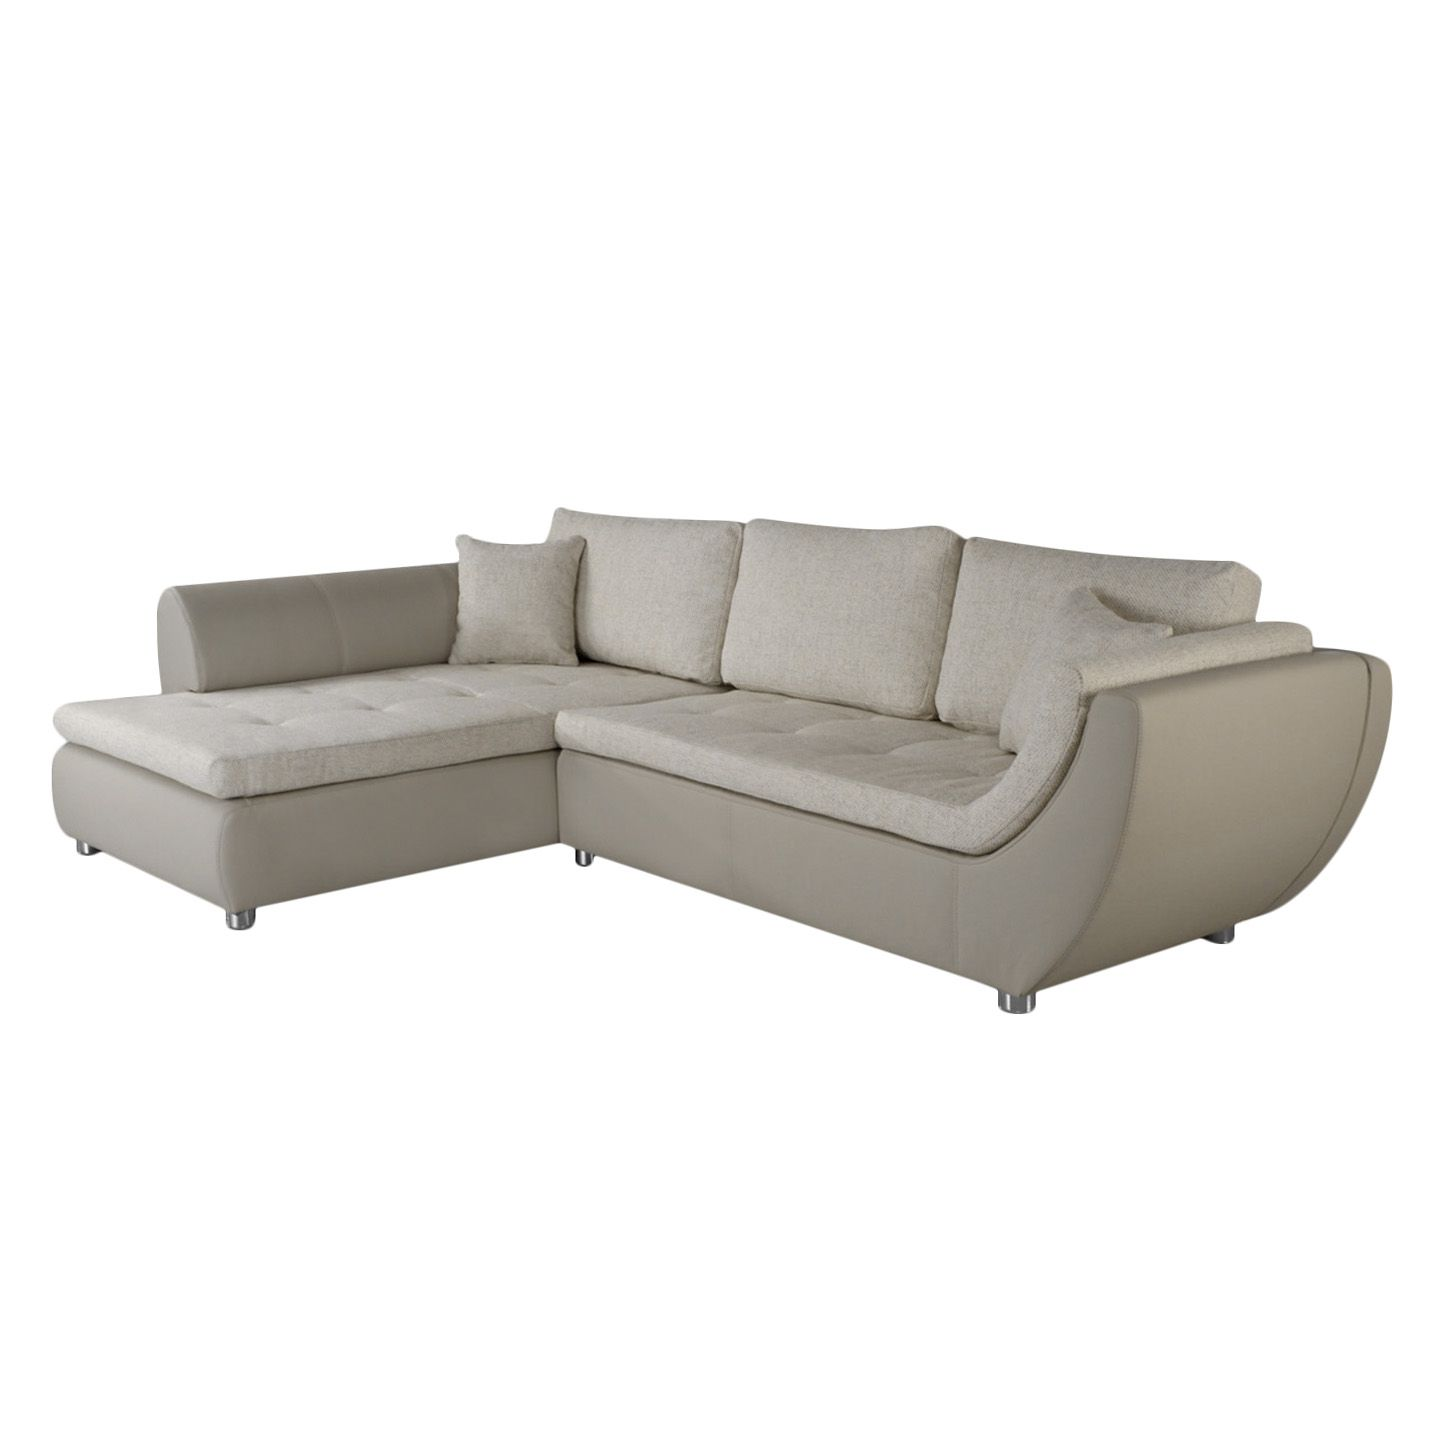 Ecksofa Nikolas, Home Design